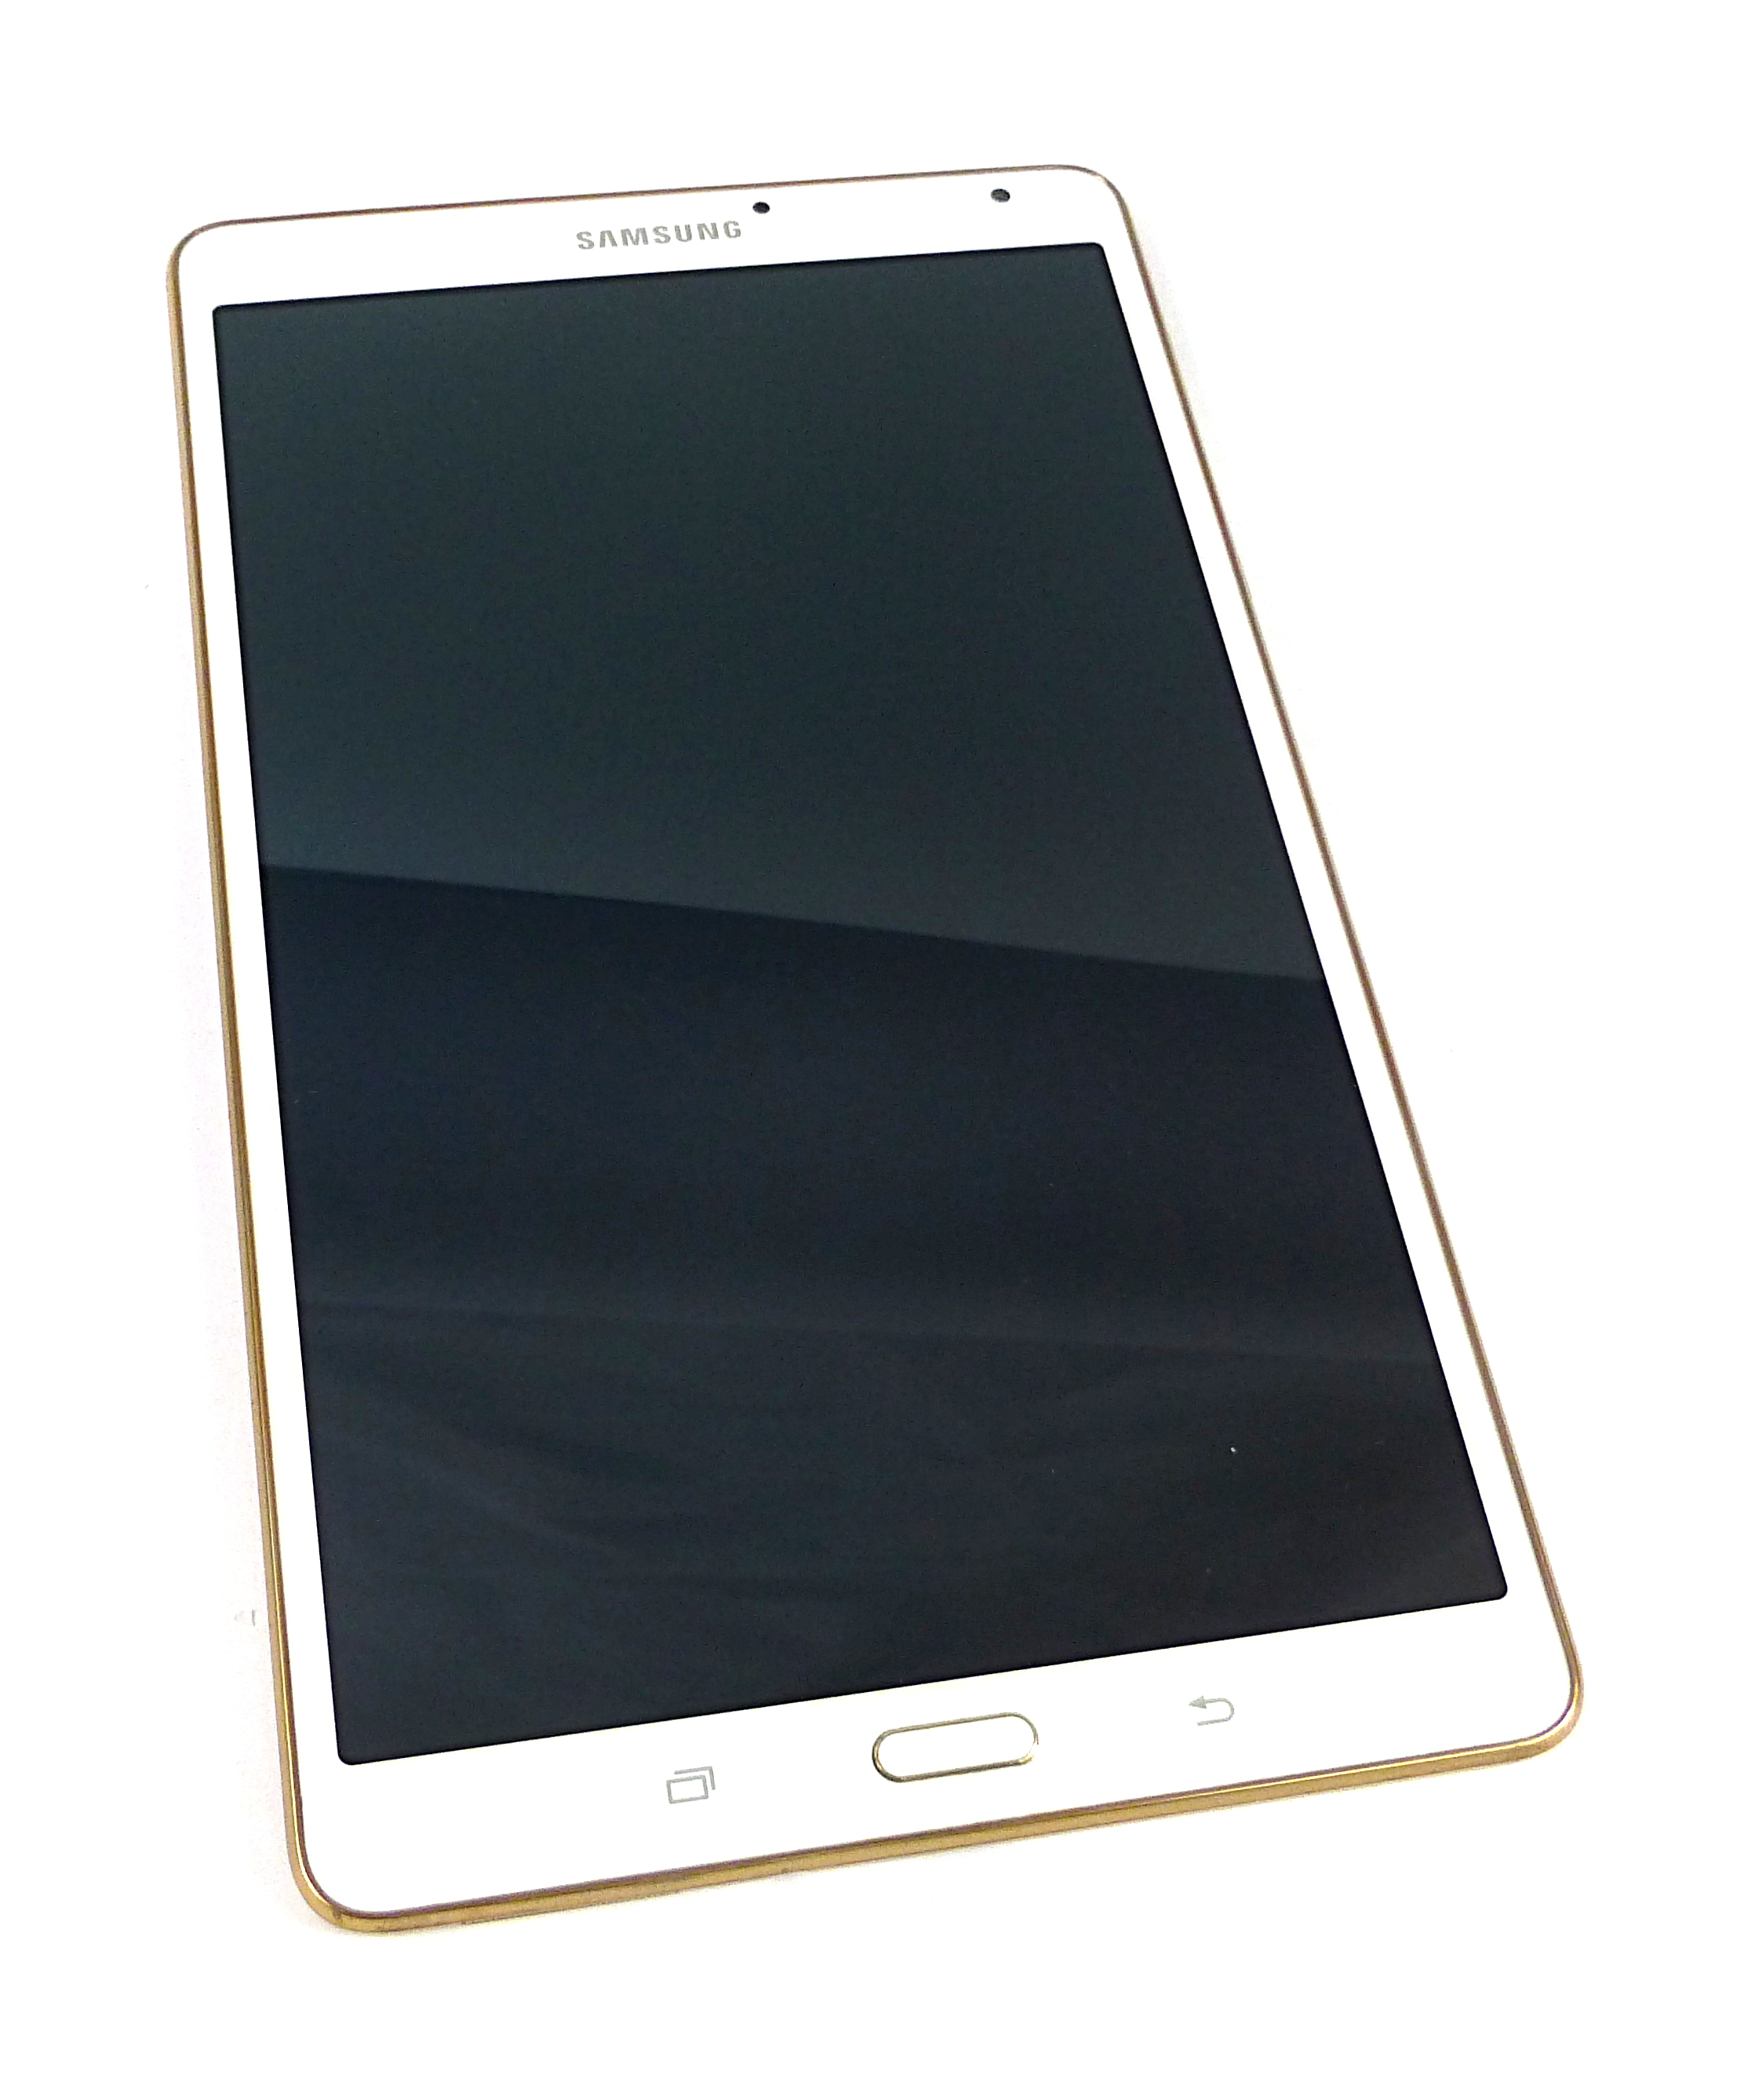 samsung galaxy tab s 8 4 sm t700 16gb white. Black Bedroom Furniture Sets. Home Design Ideas